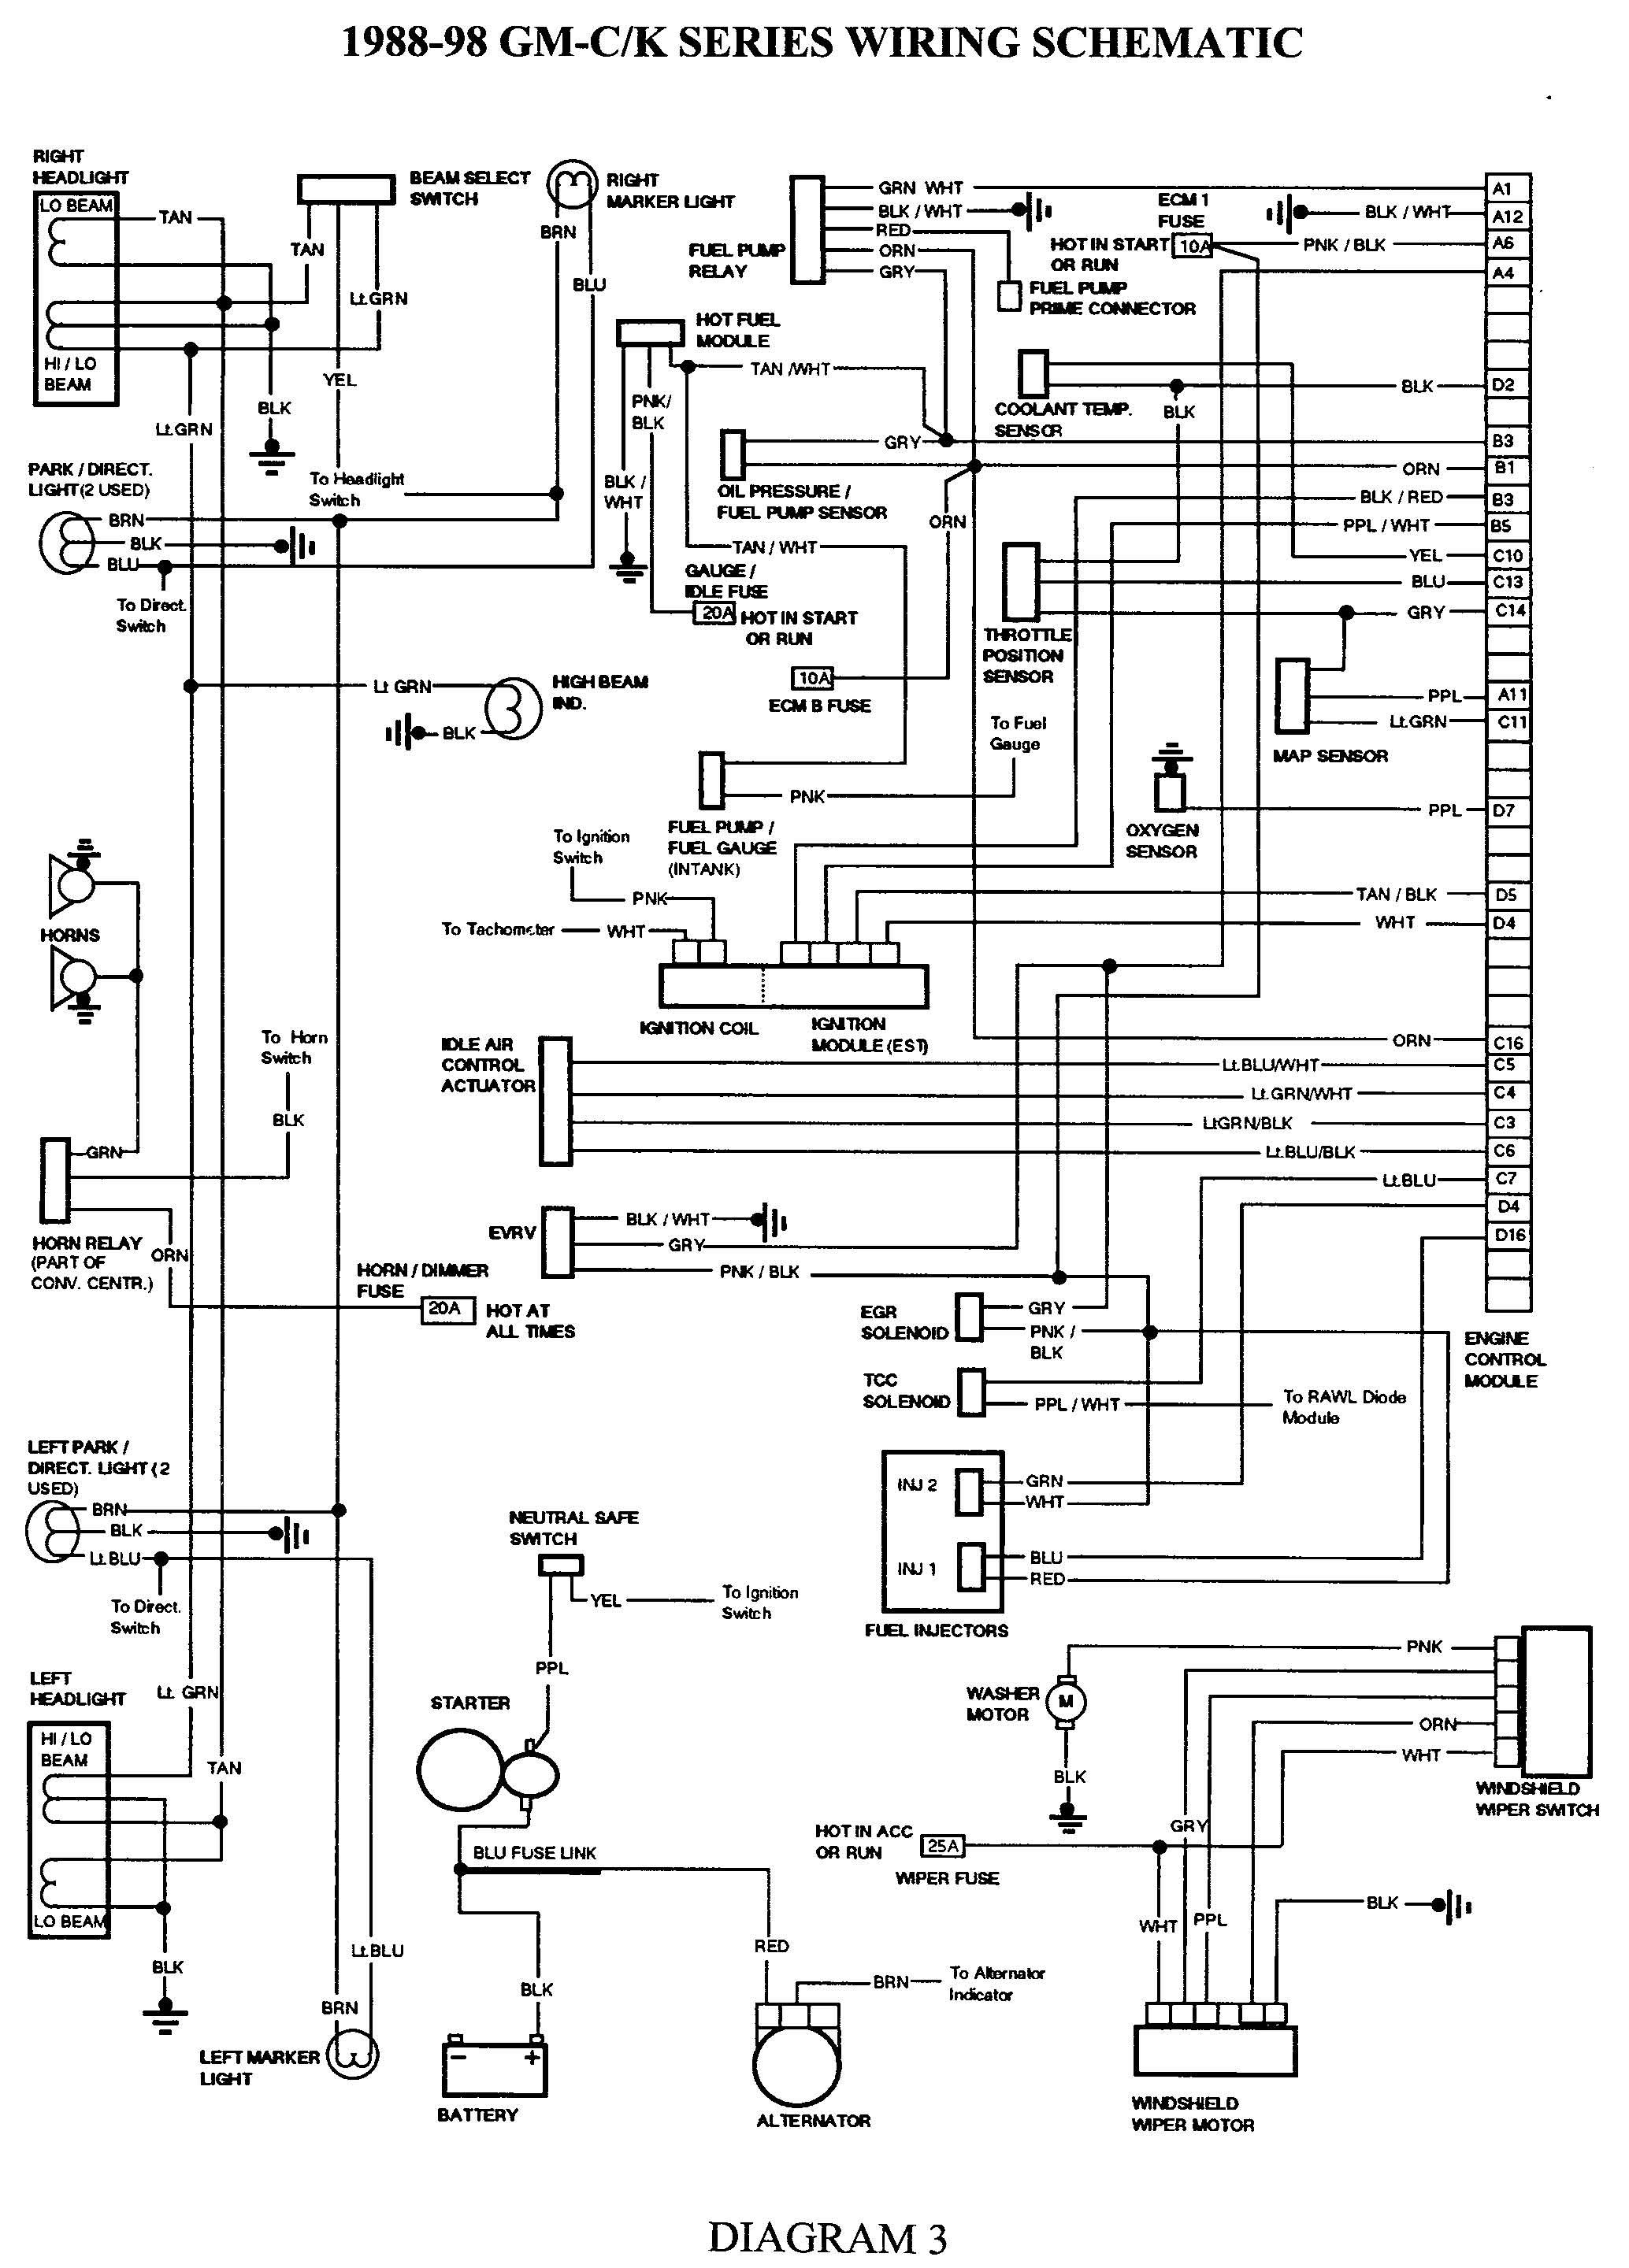 GMC Truck Wiring Diagrams on Gm Wiring Harness Diagram 88 98 Chevy Silverado  2500, Chevy